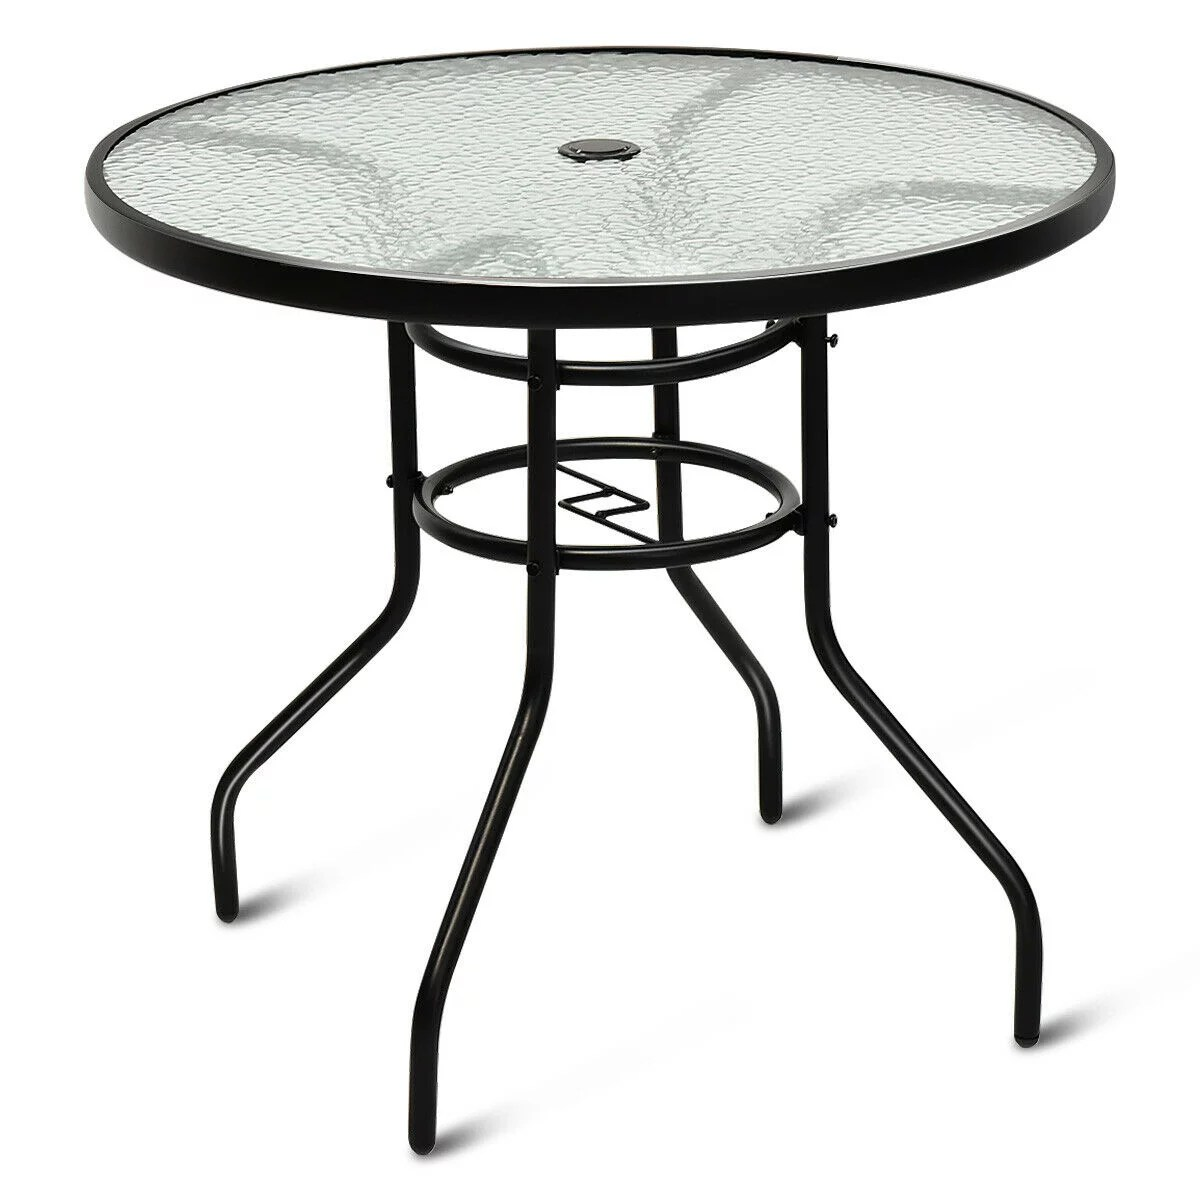 costway 32 patio round table tempered glass steel frame outdoor pool yard garden